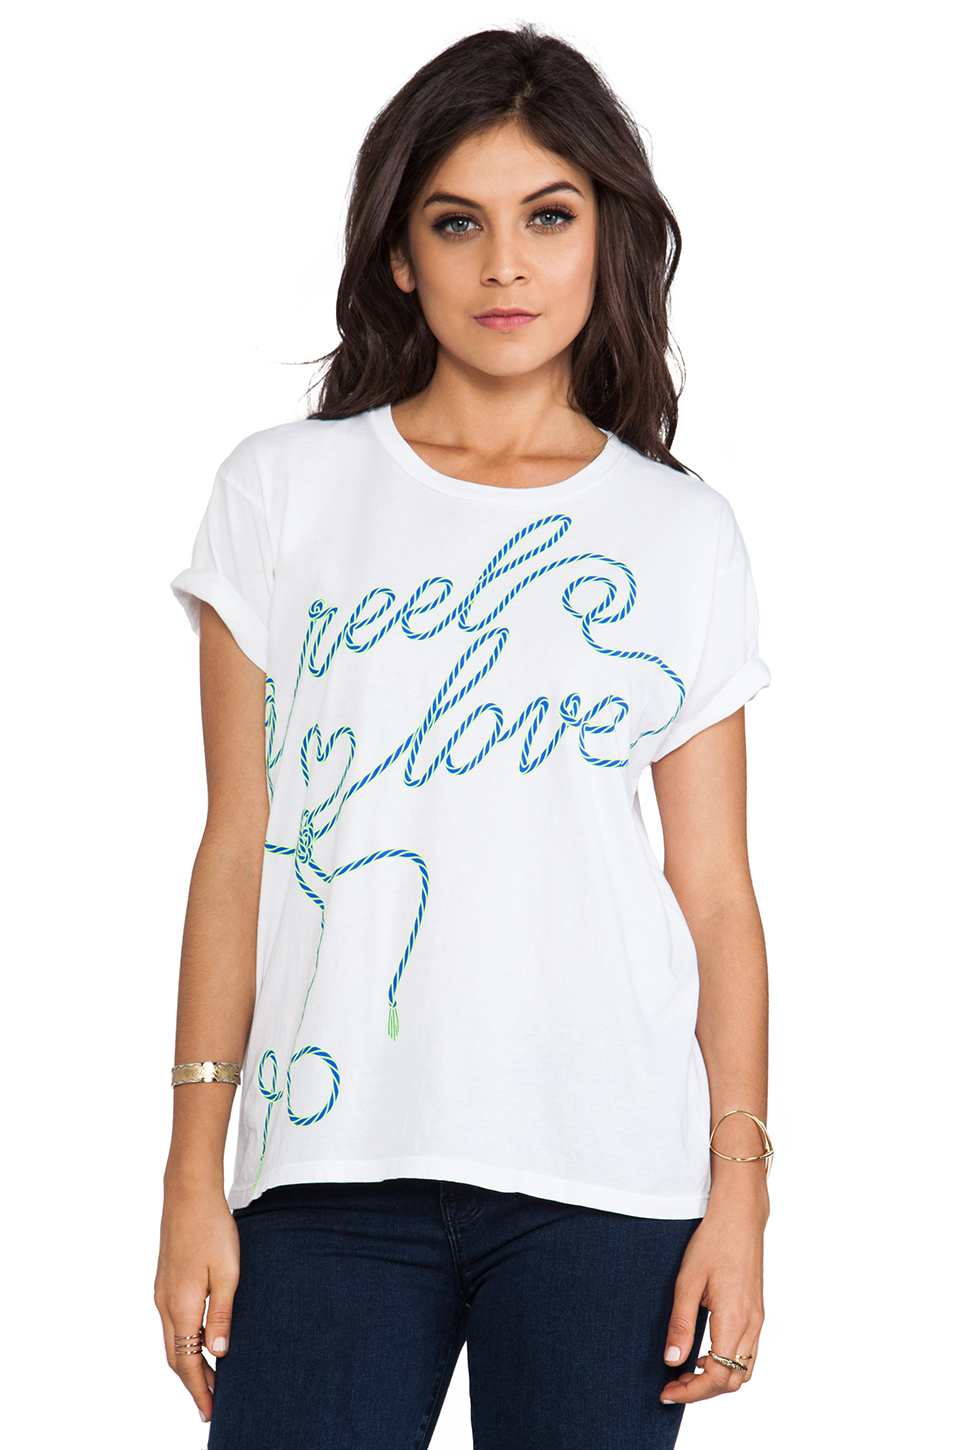 Lovers + Friends Graphic Tee in Reel Love